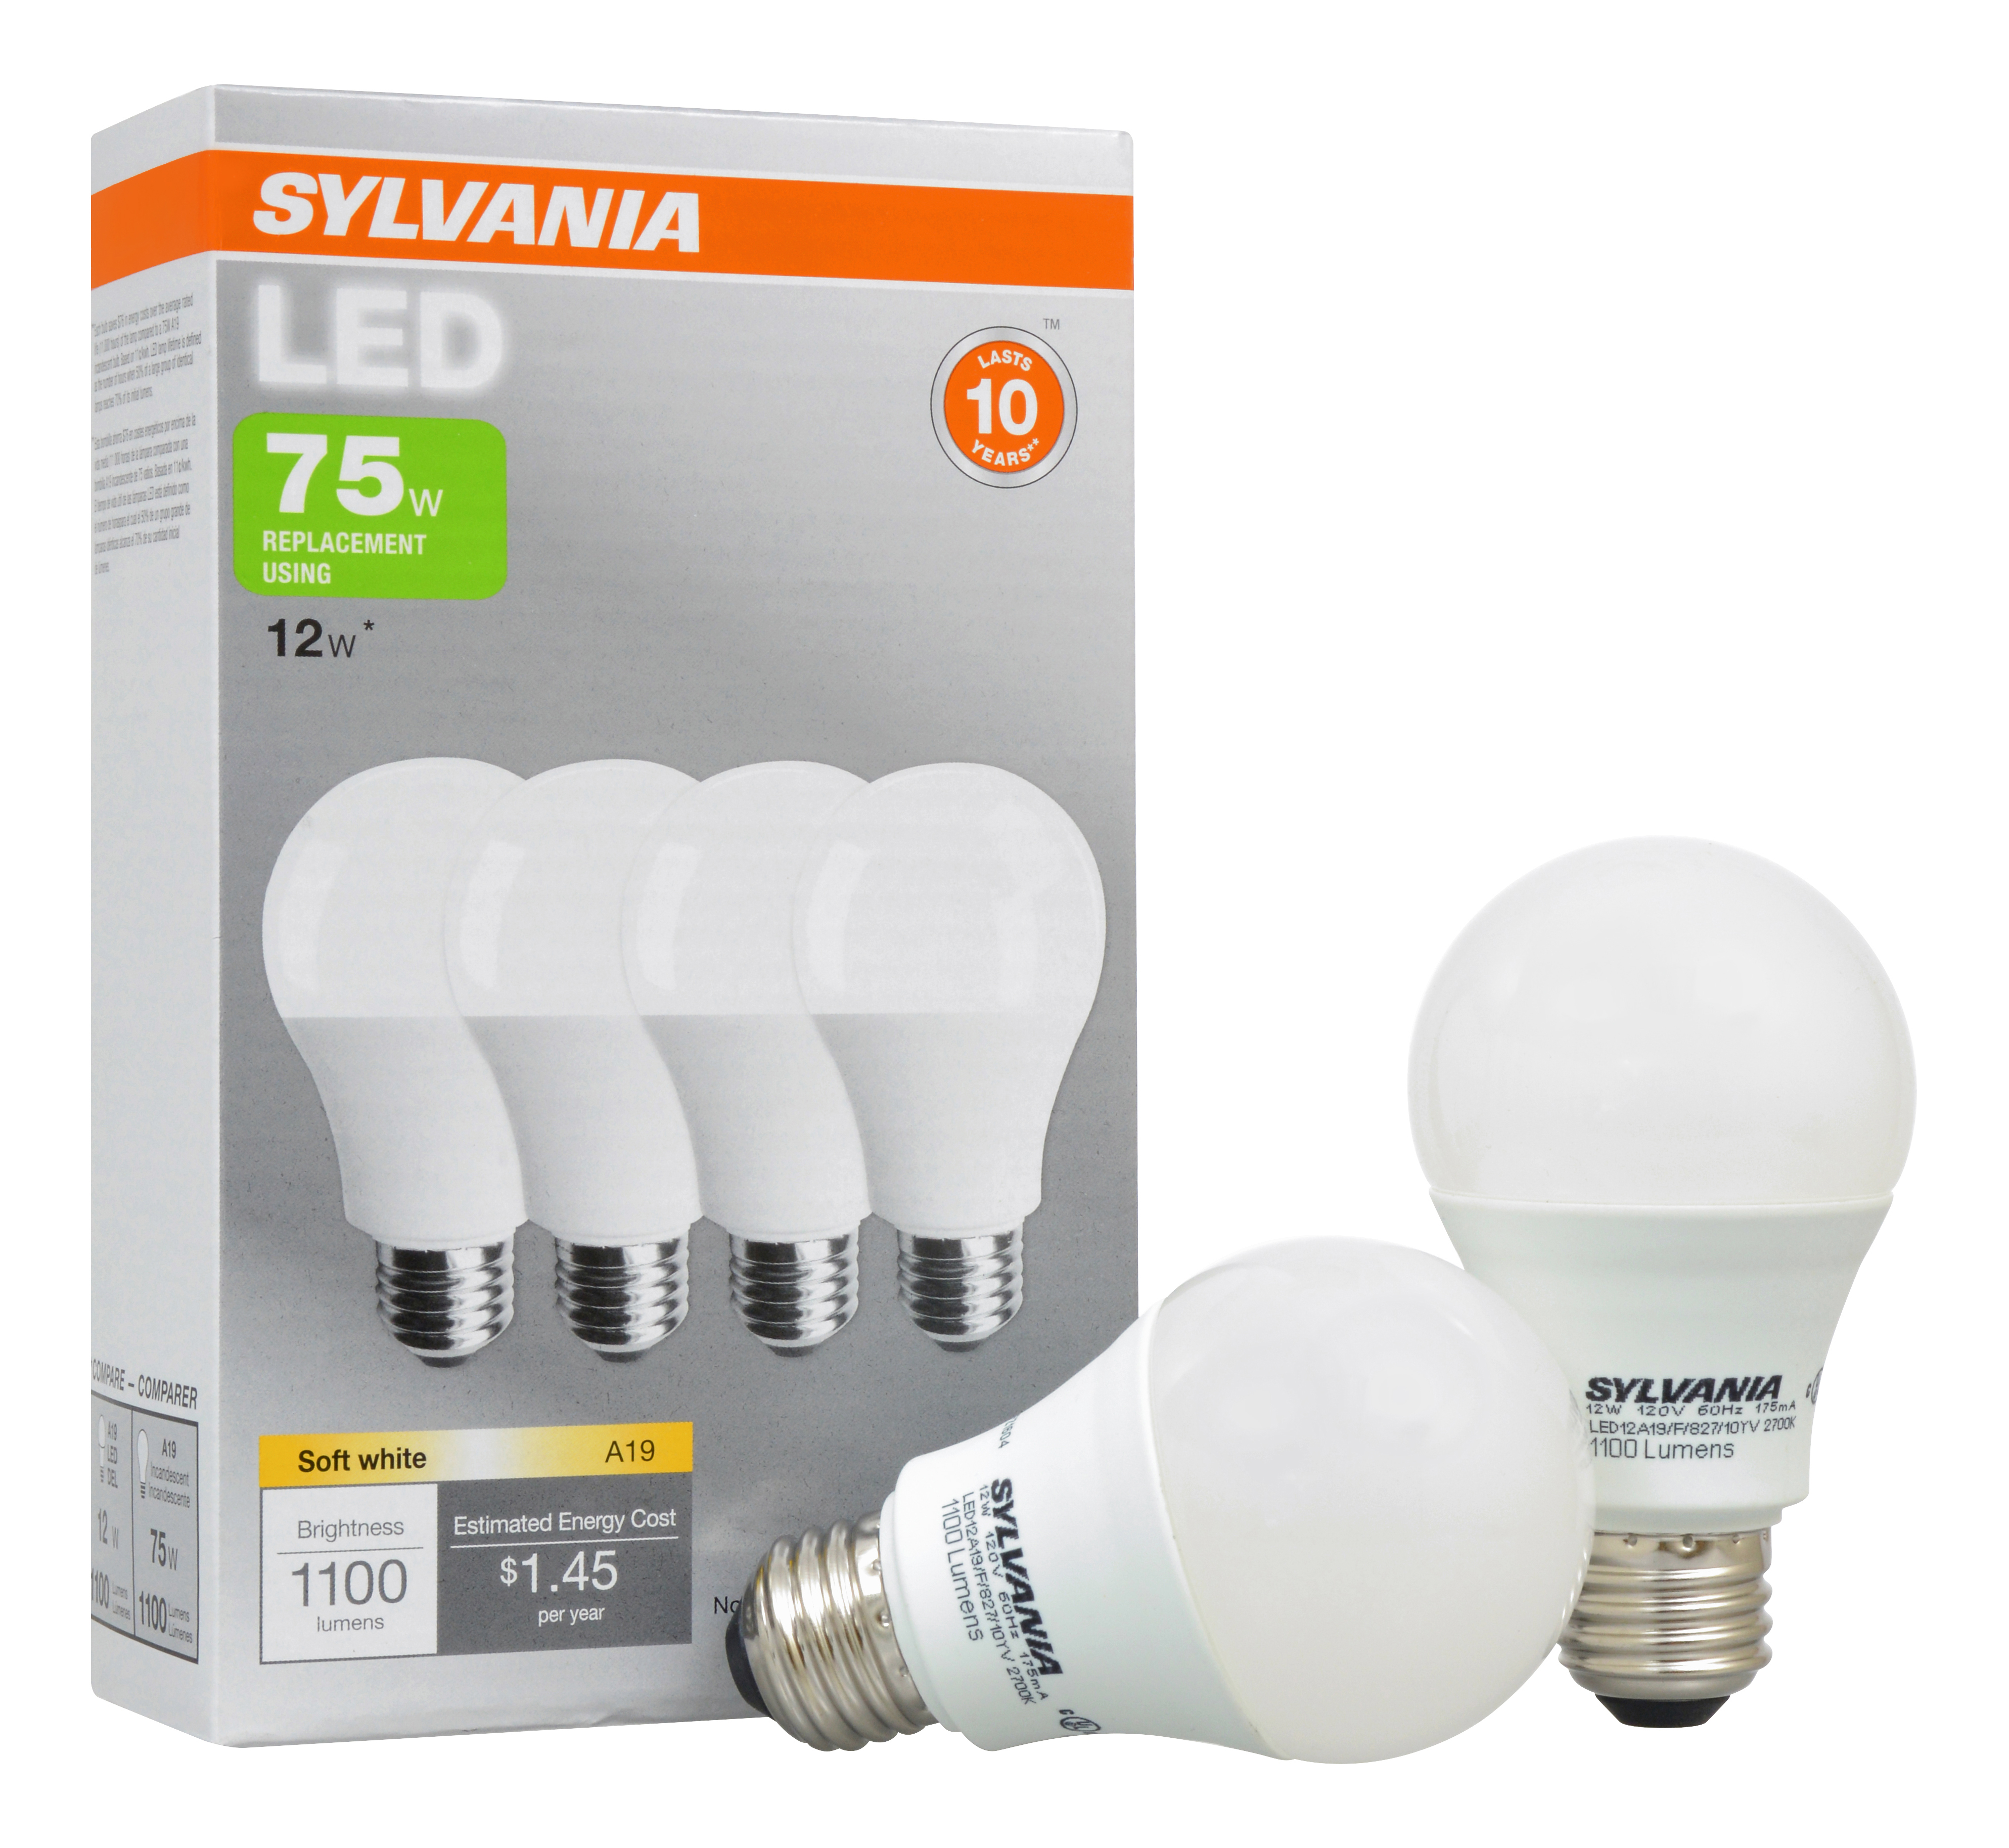 Sylvania LED Light Bulbs, 12W (75W Equivalent), Soft White, 4-count